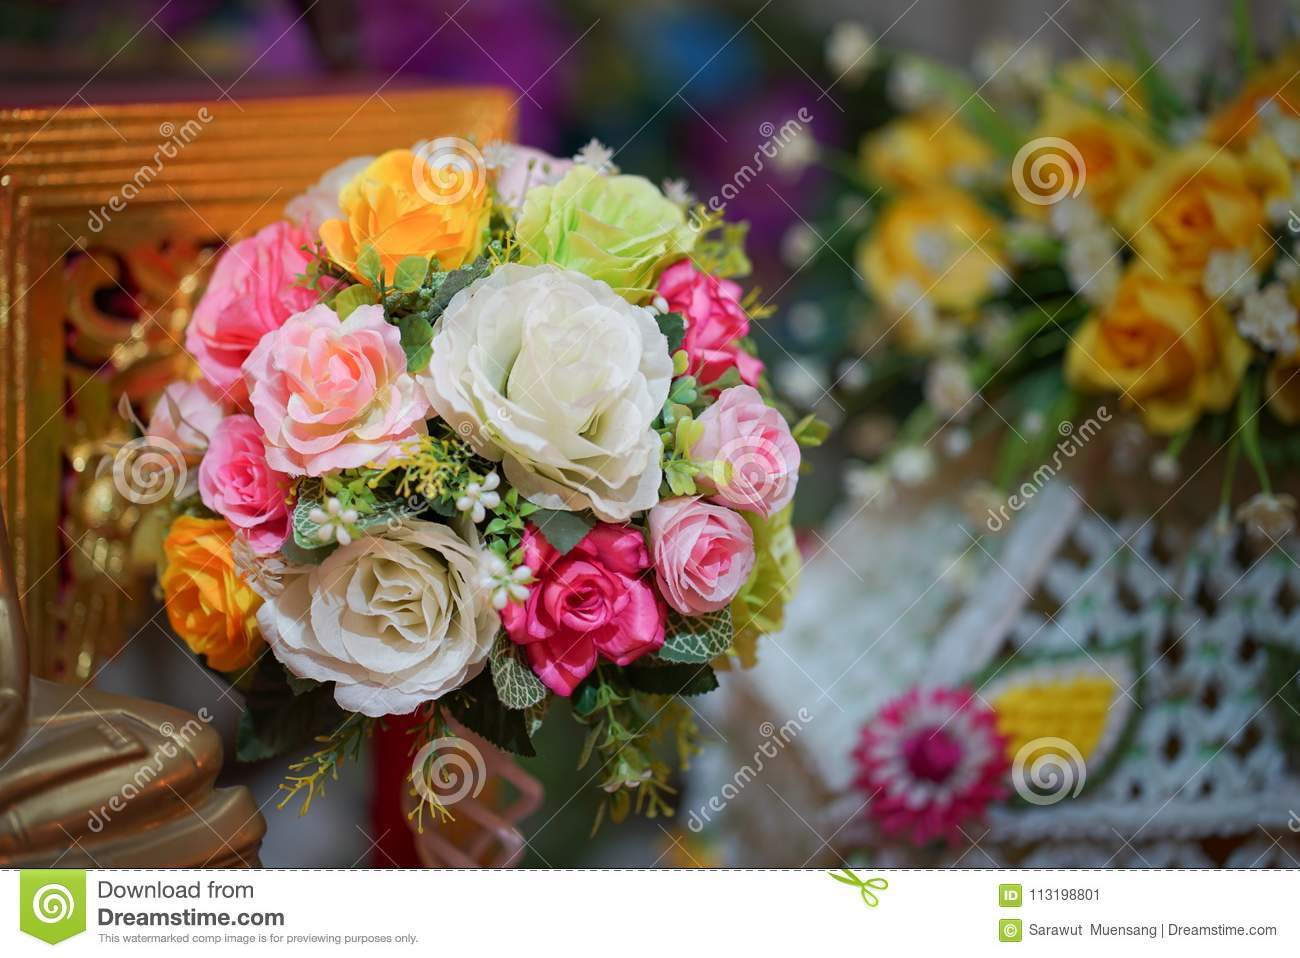 Fake flower and floral background rose flowers made of fabric the fake flower and floral background rose flowers made of fabric the fabric flowers bouquet izmirmasajfo